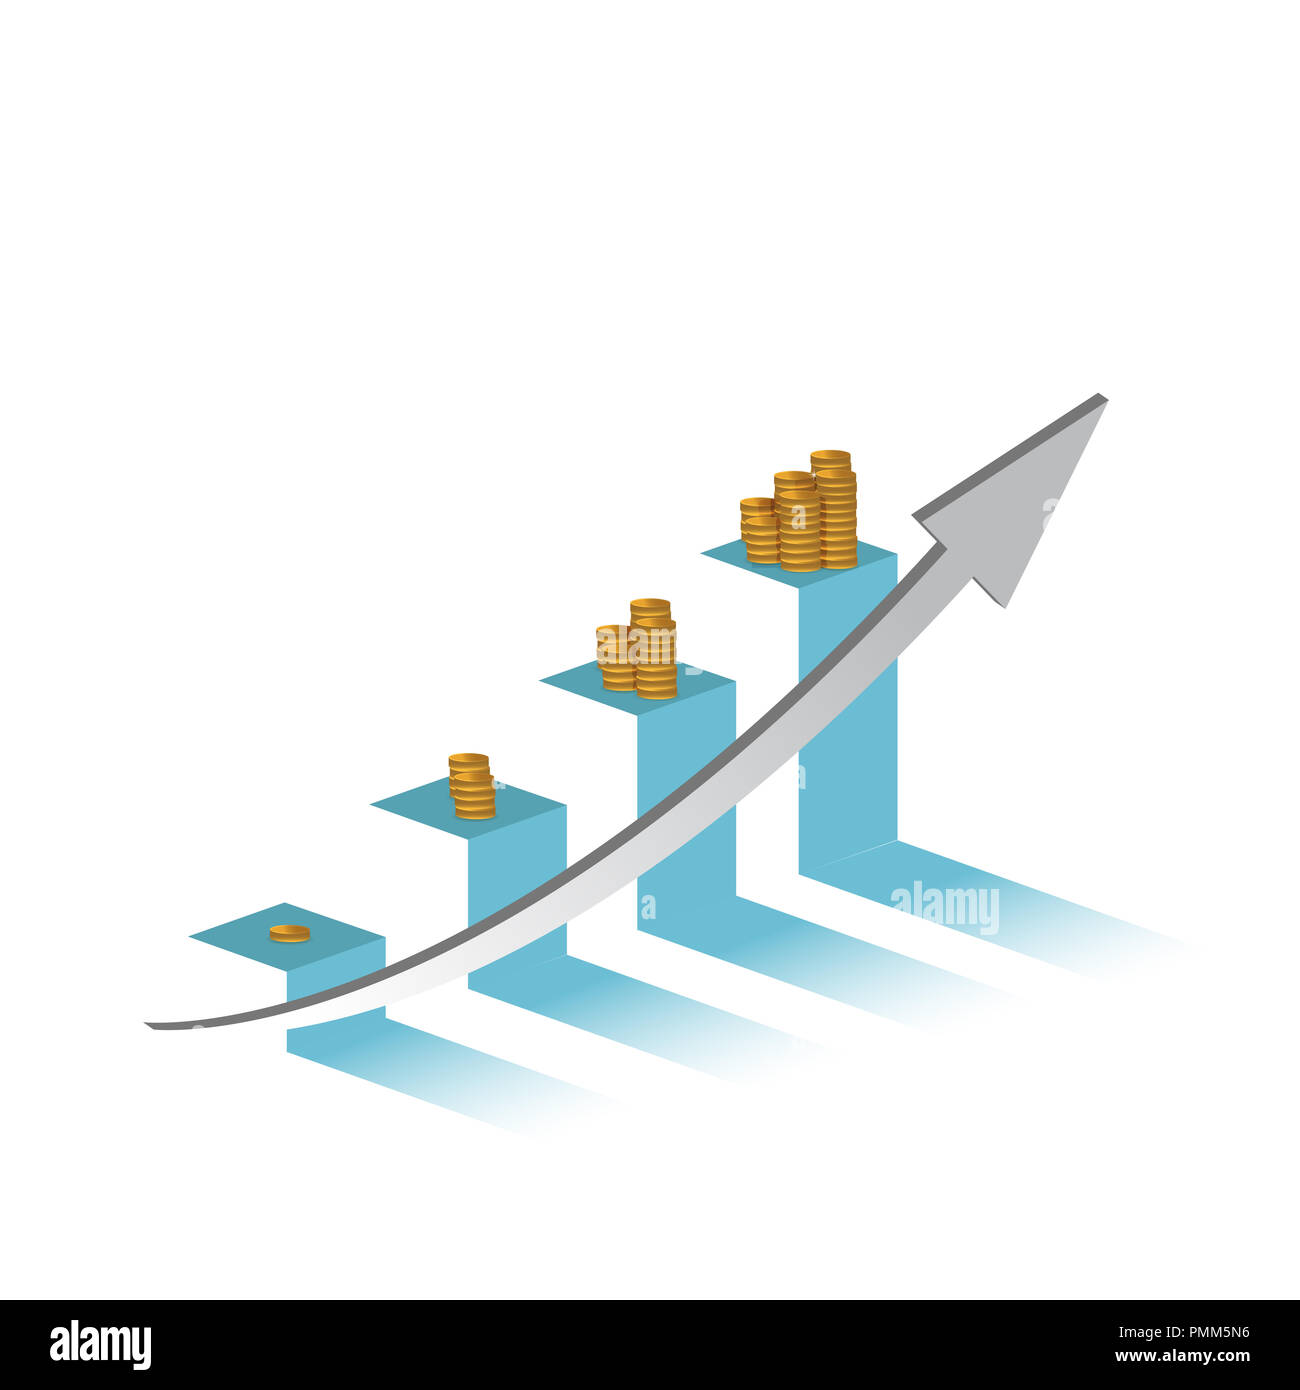 increasing profits on a business graph.financial concept. hitting the target. illustration design graphic isolated over white - Stock Image